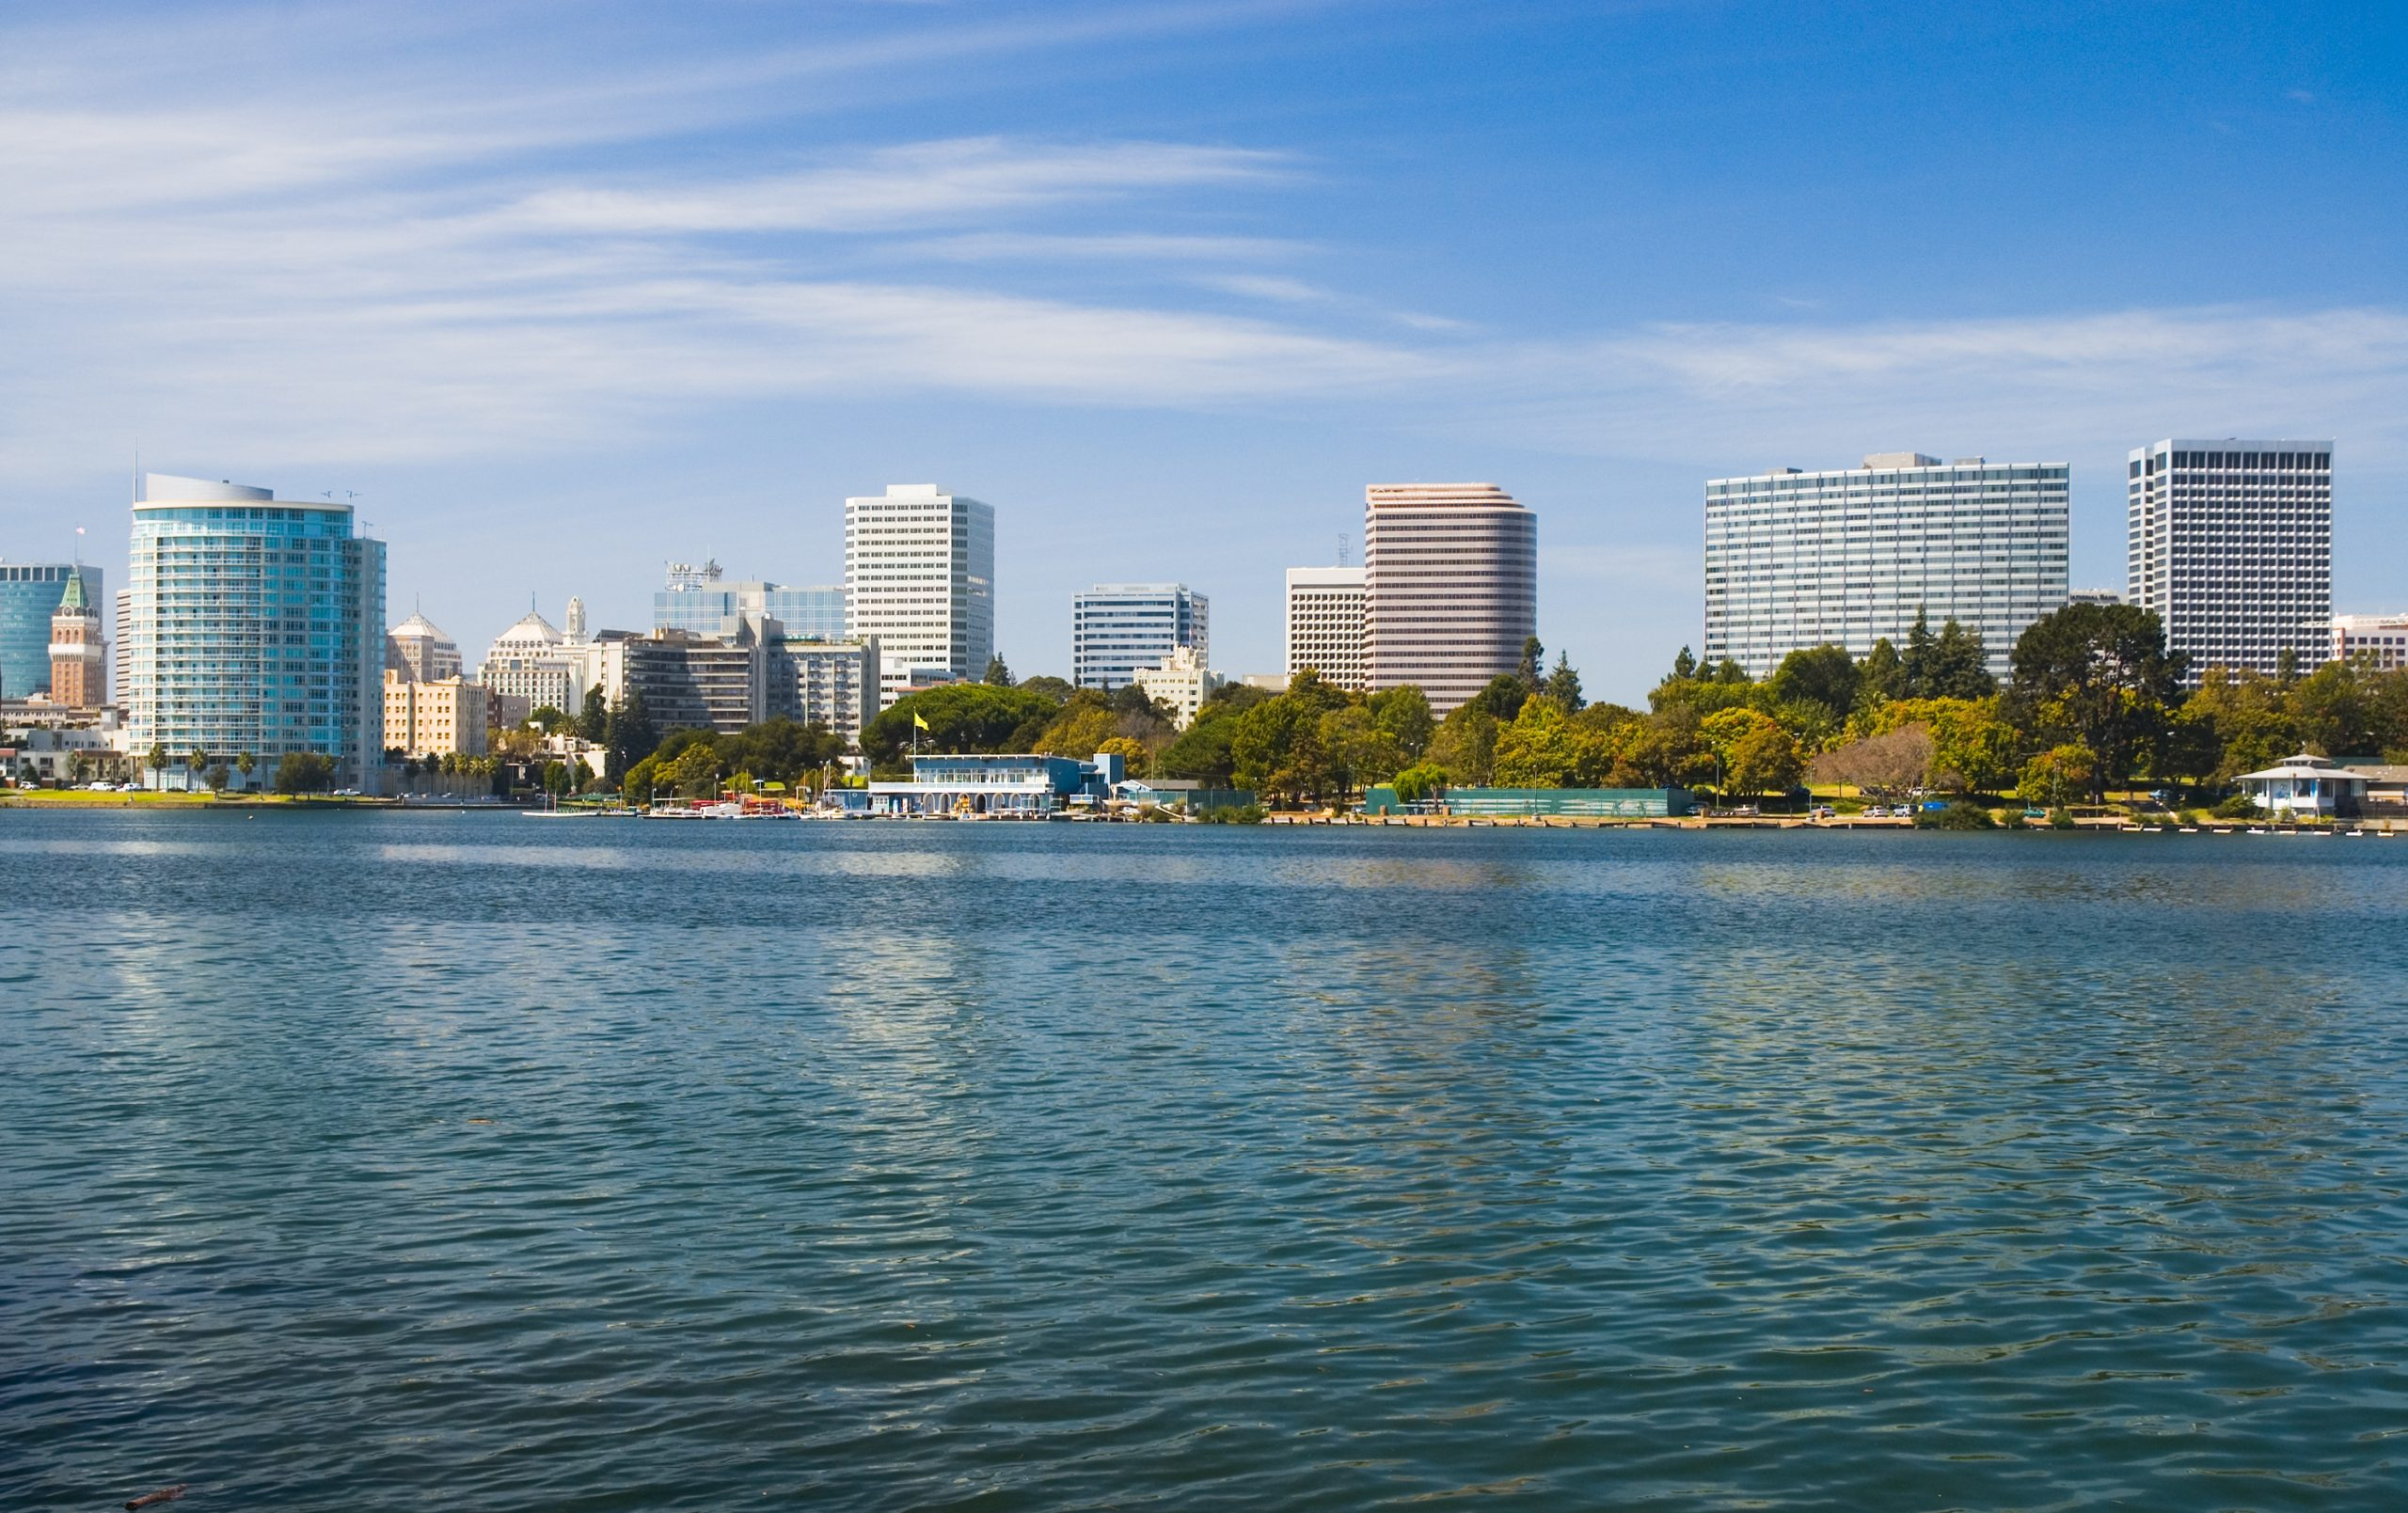 Oakland Downtown skyline with Lake Merritt in the foreground.